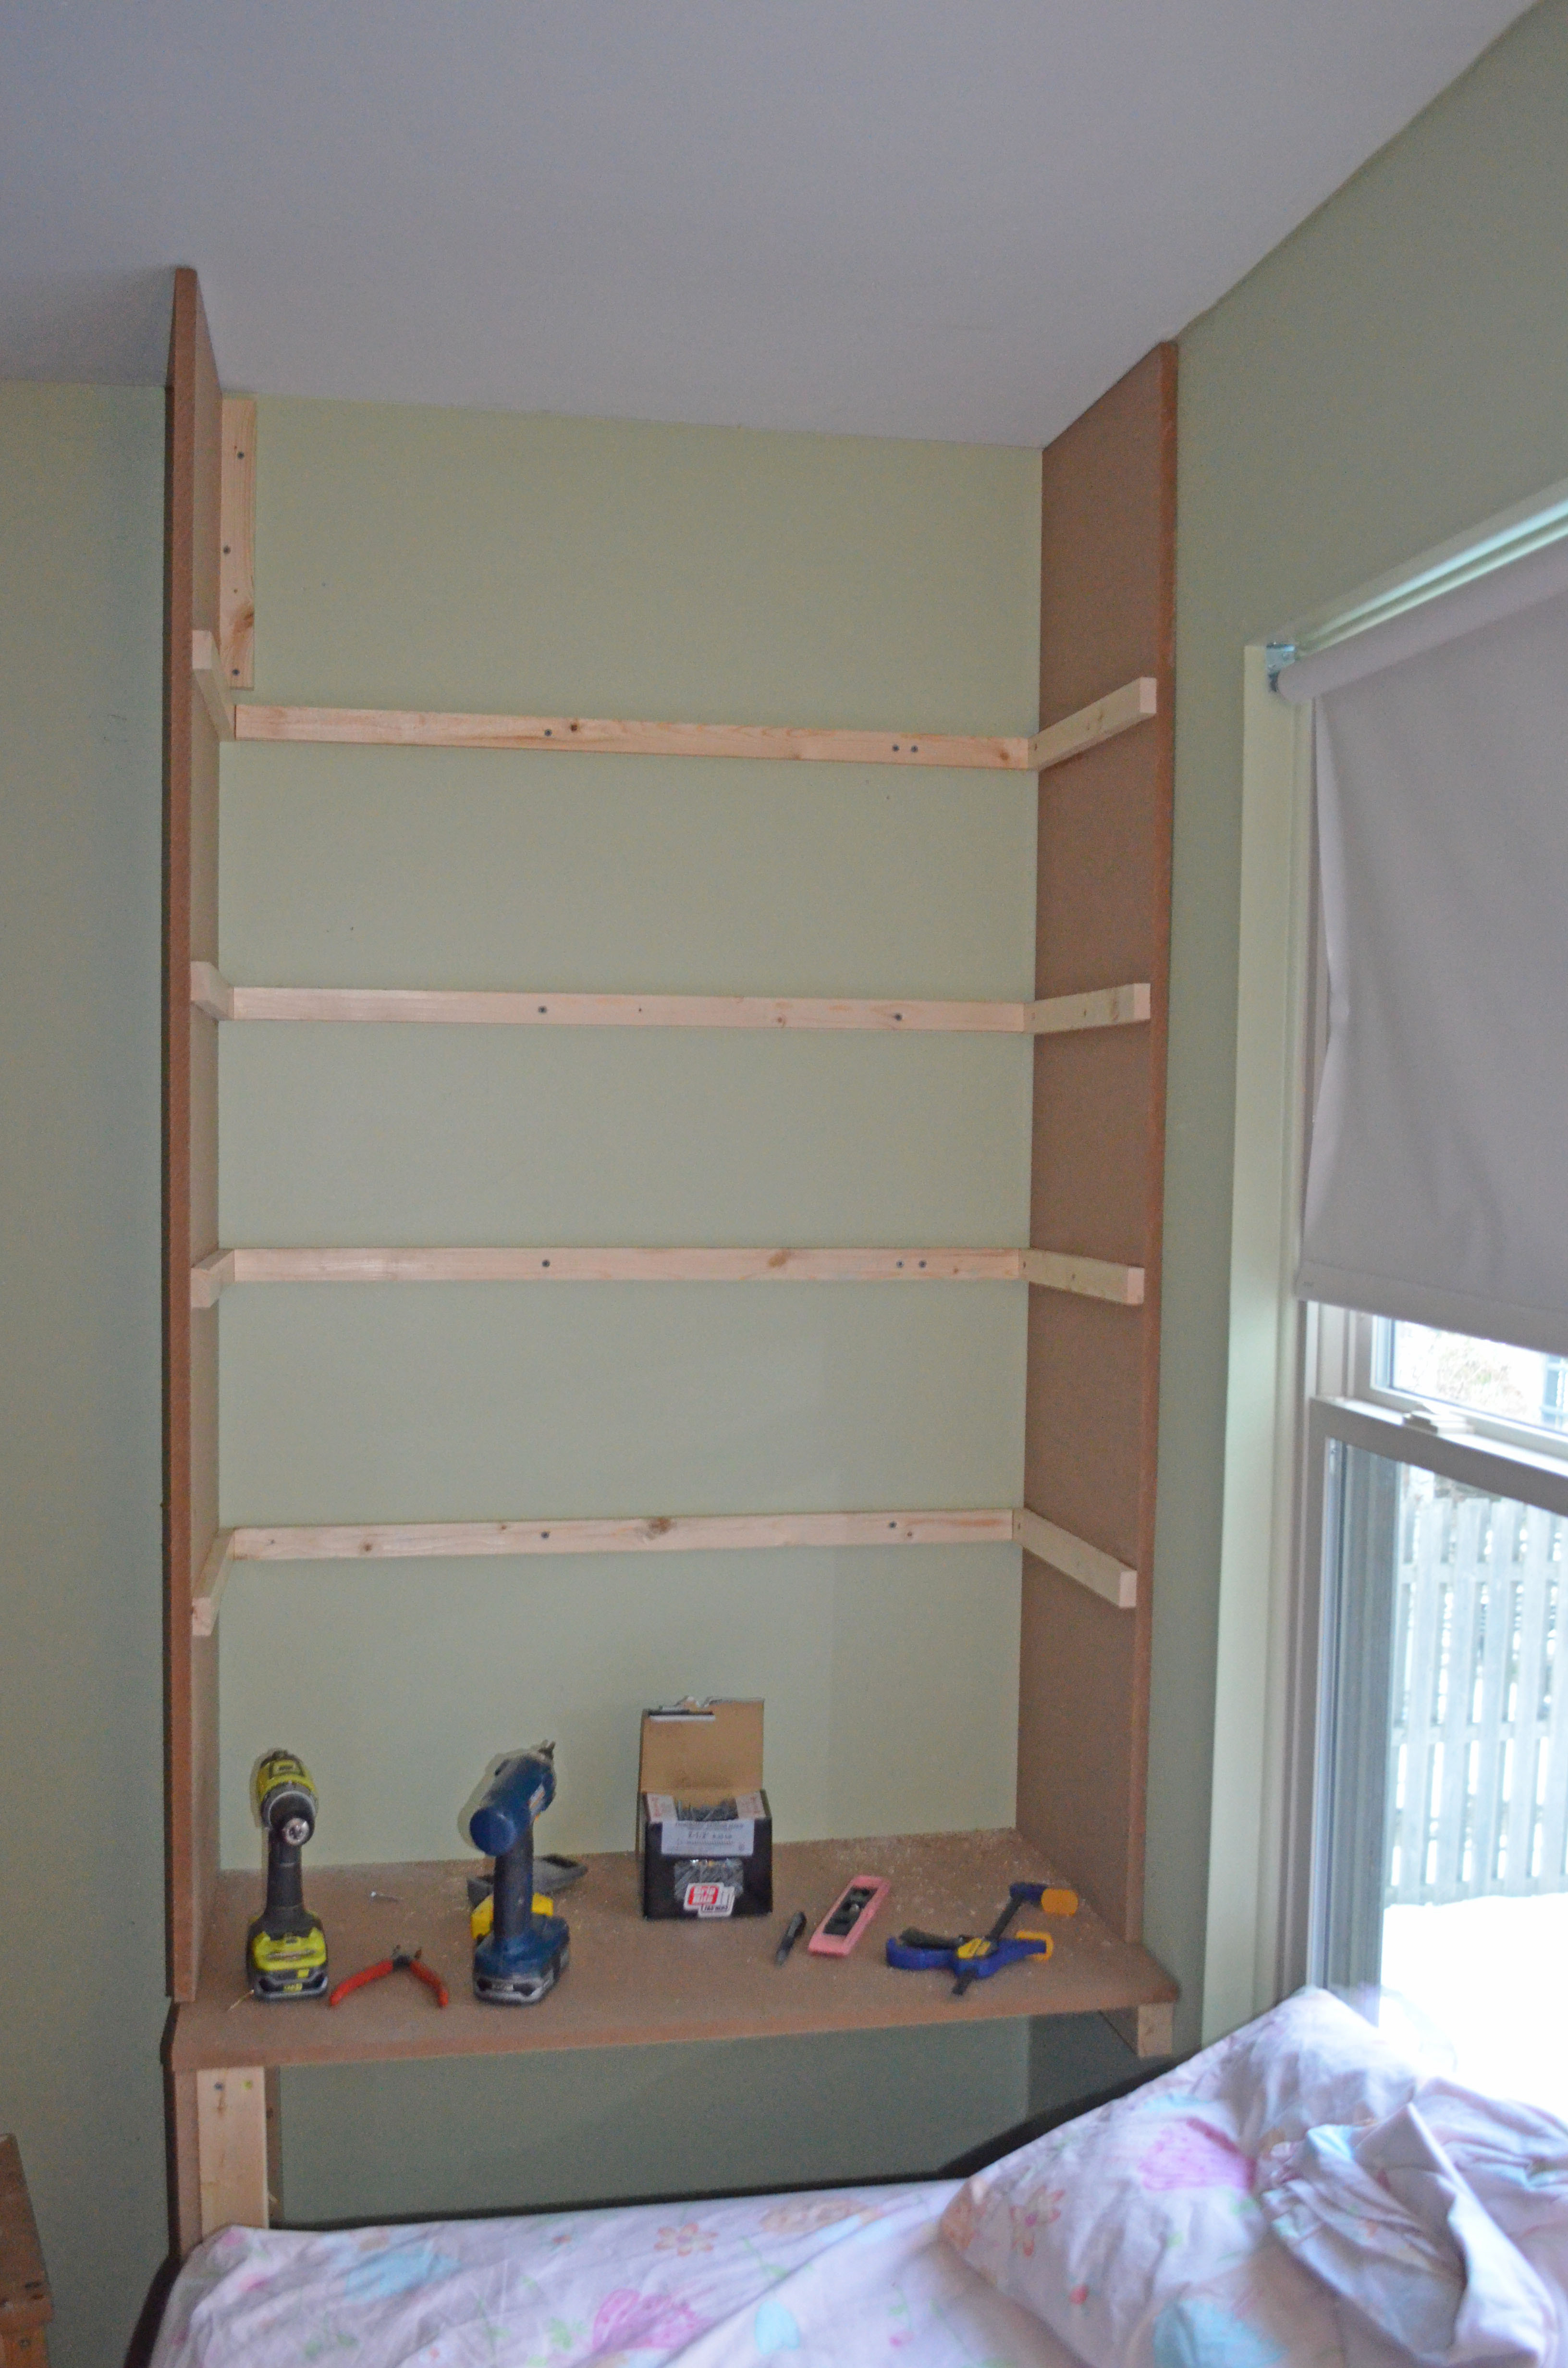 Office 2: Built-in Bookshelves